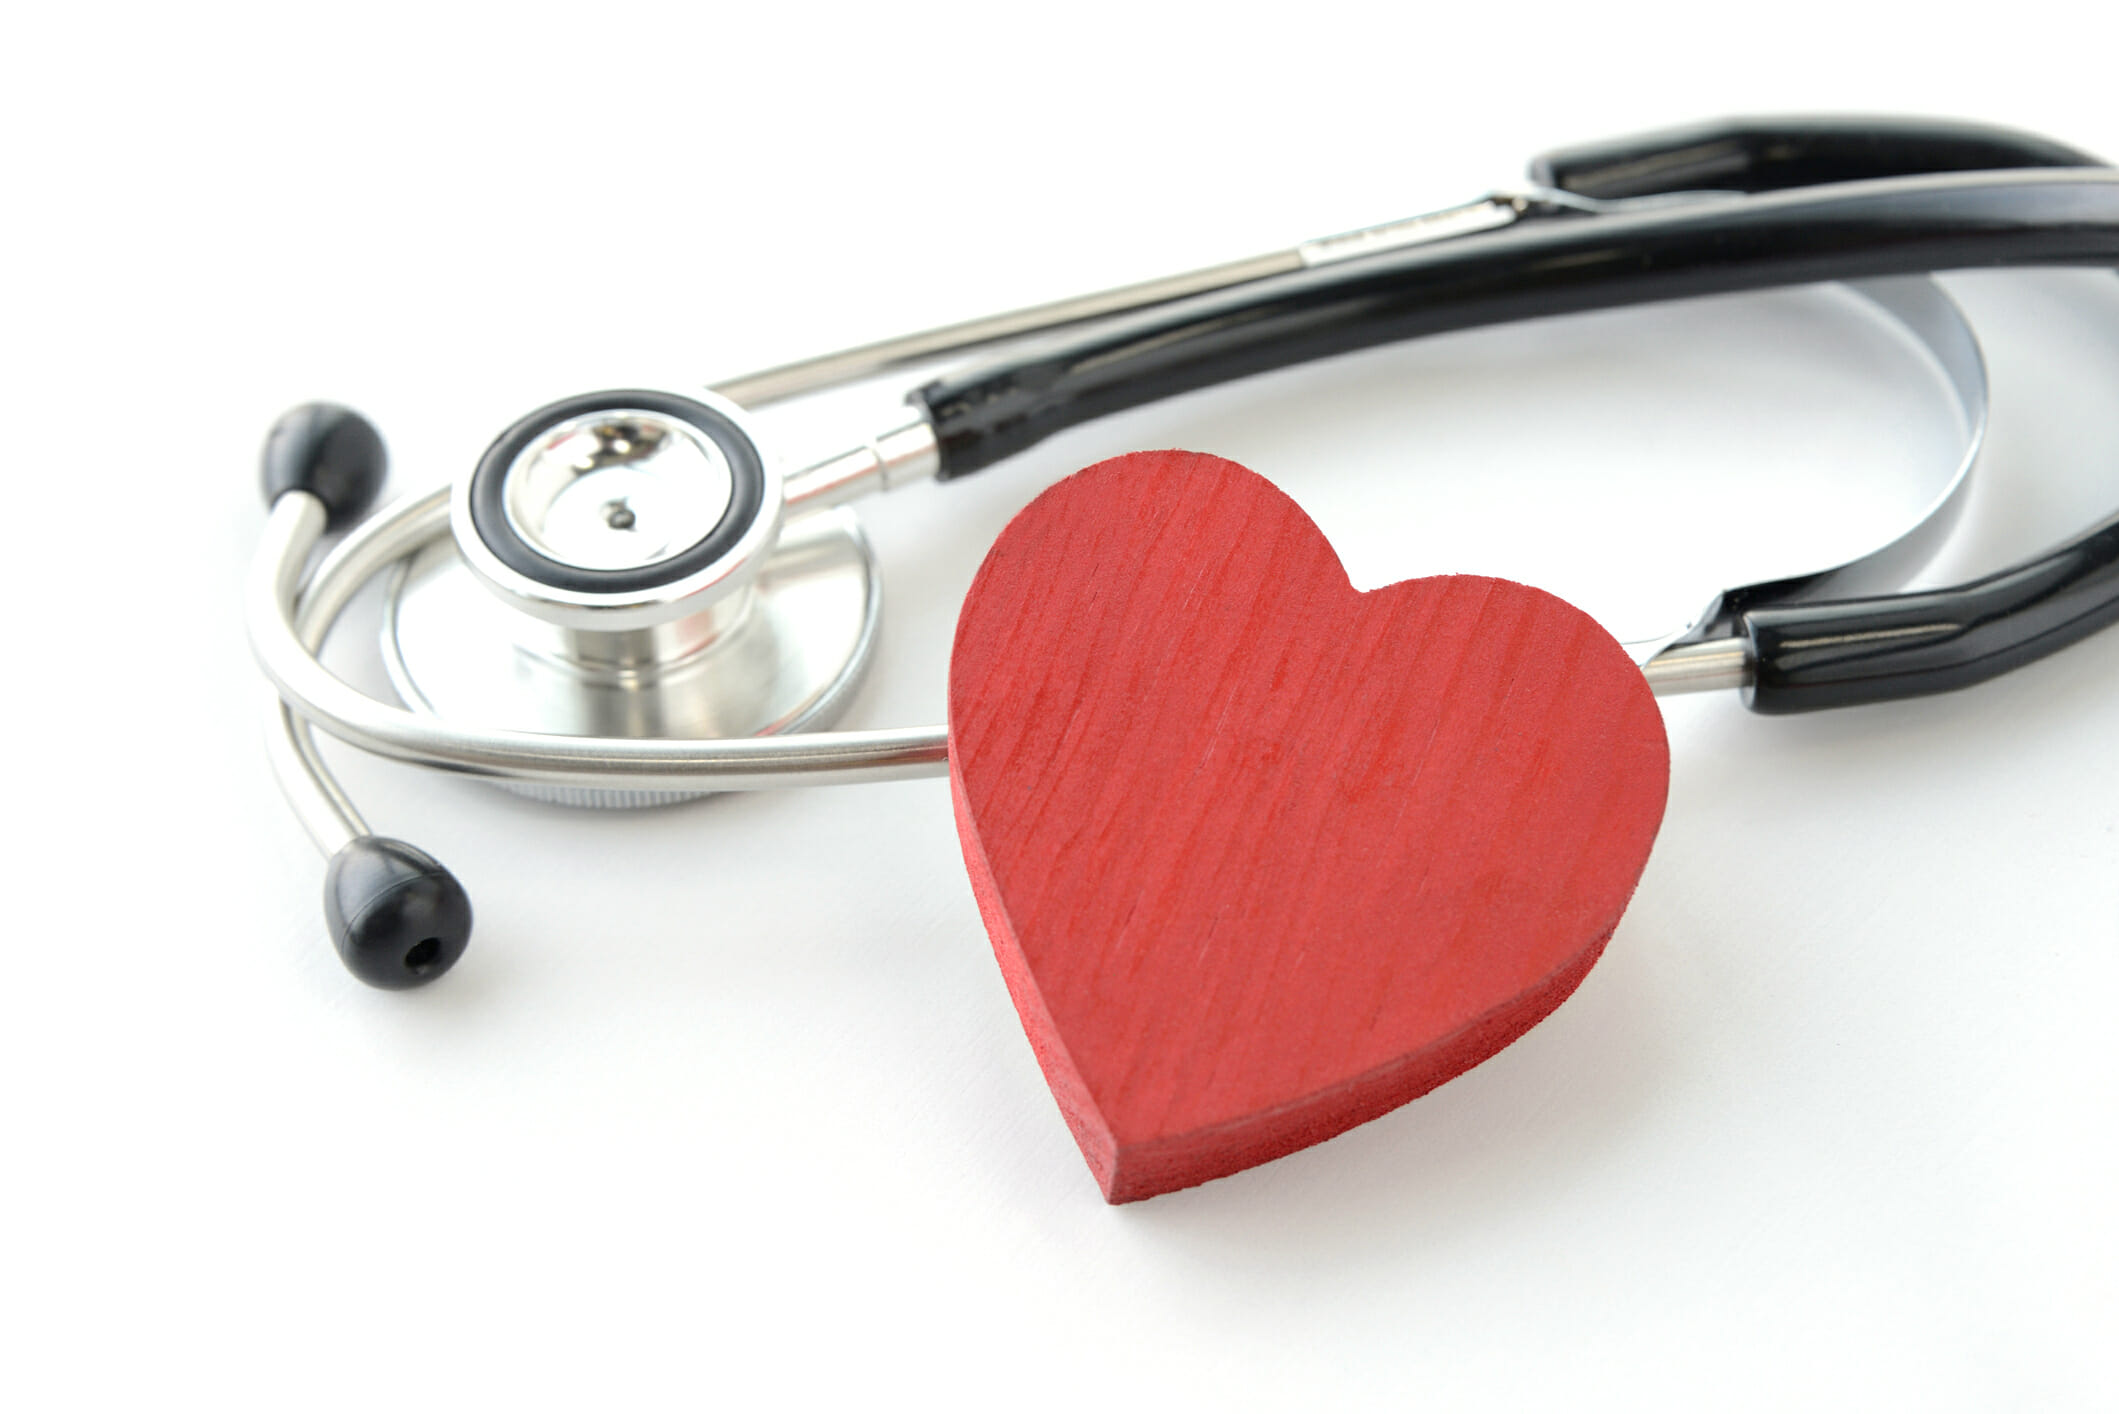 Heart object and stethoscope